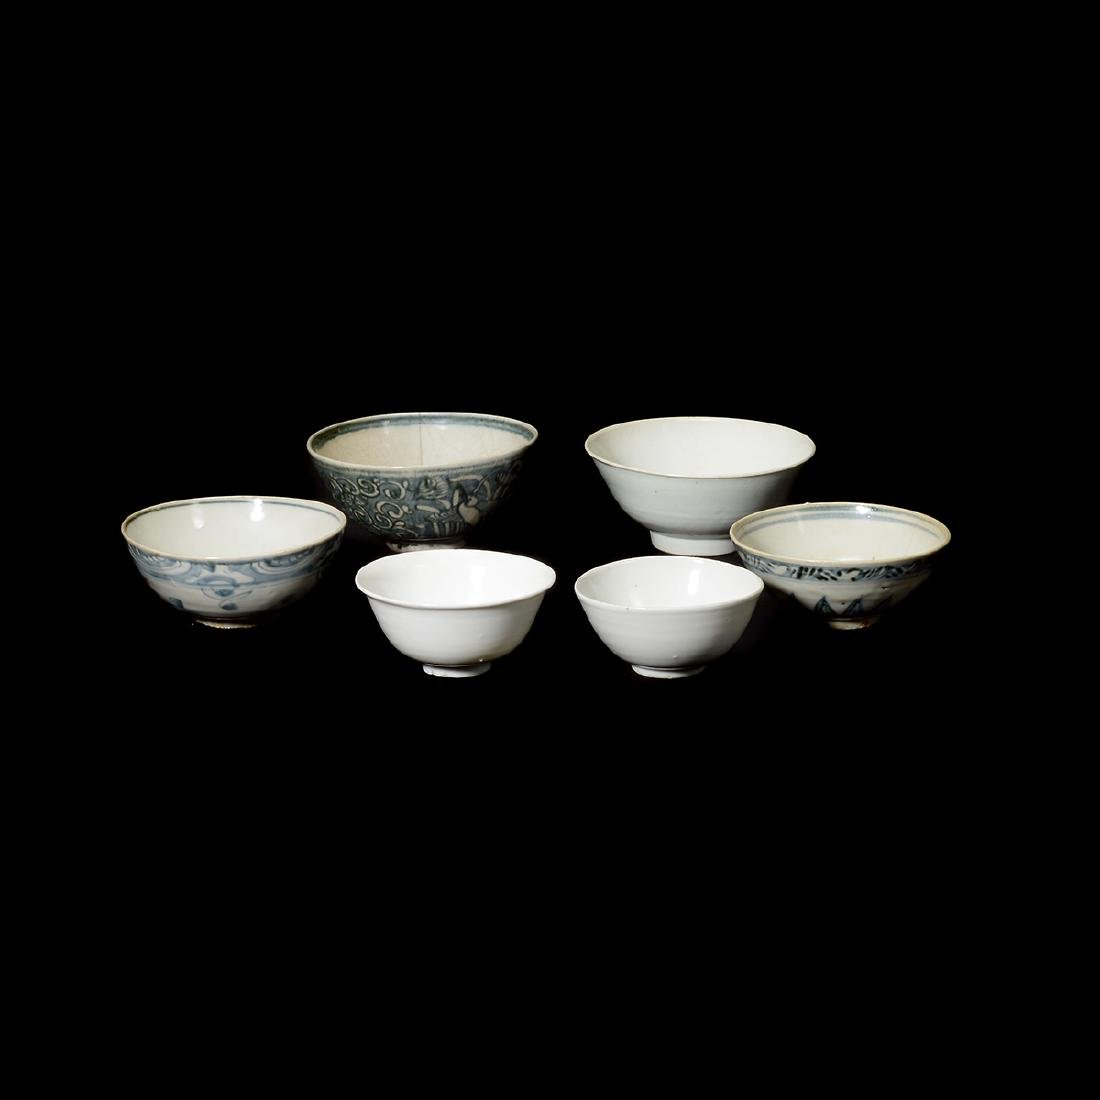 Six Chinese Export Glazed Porcelain Bowls